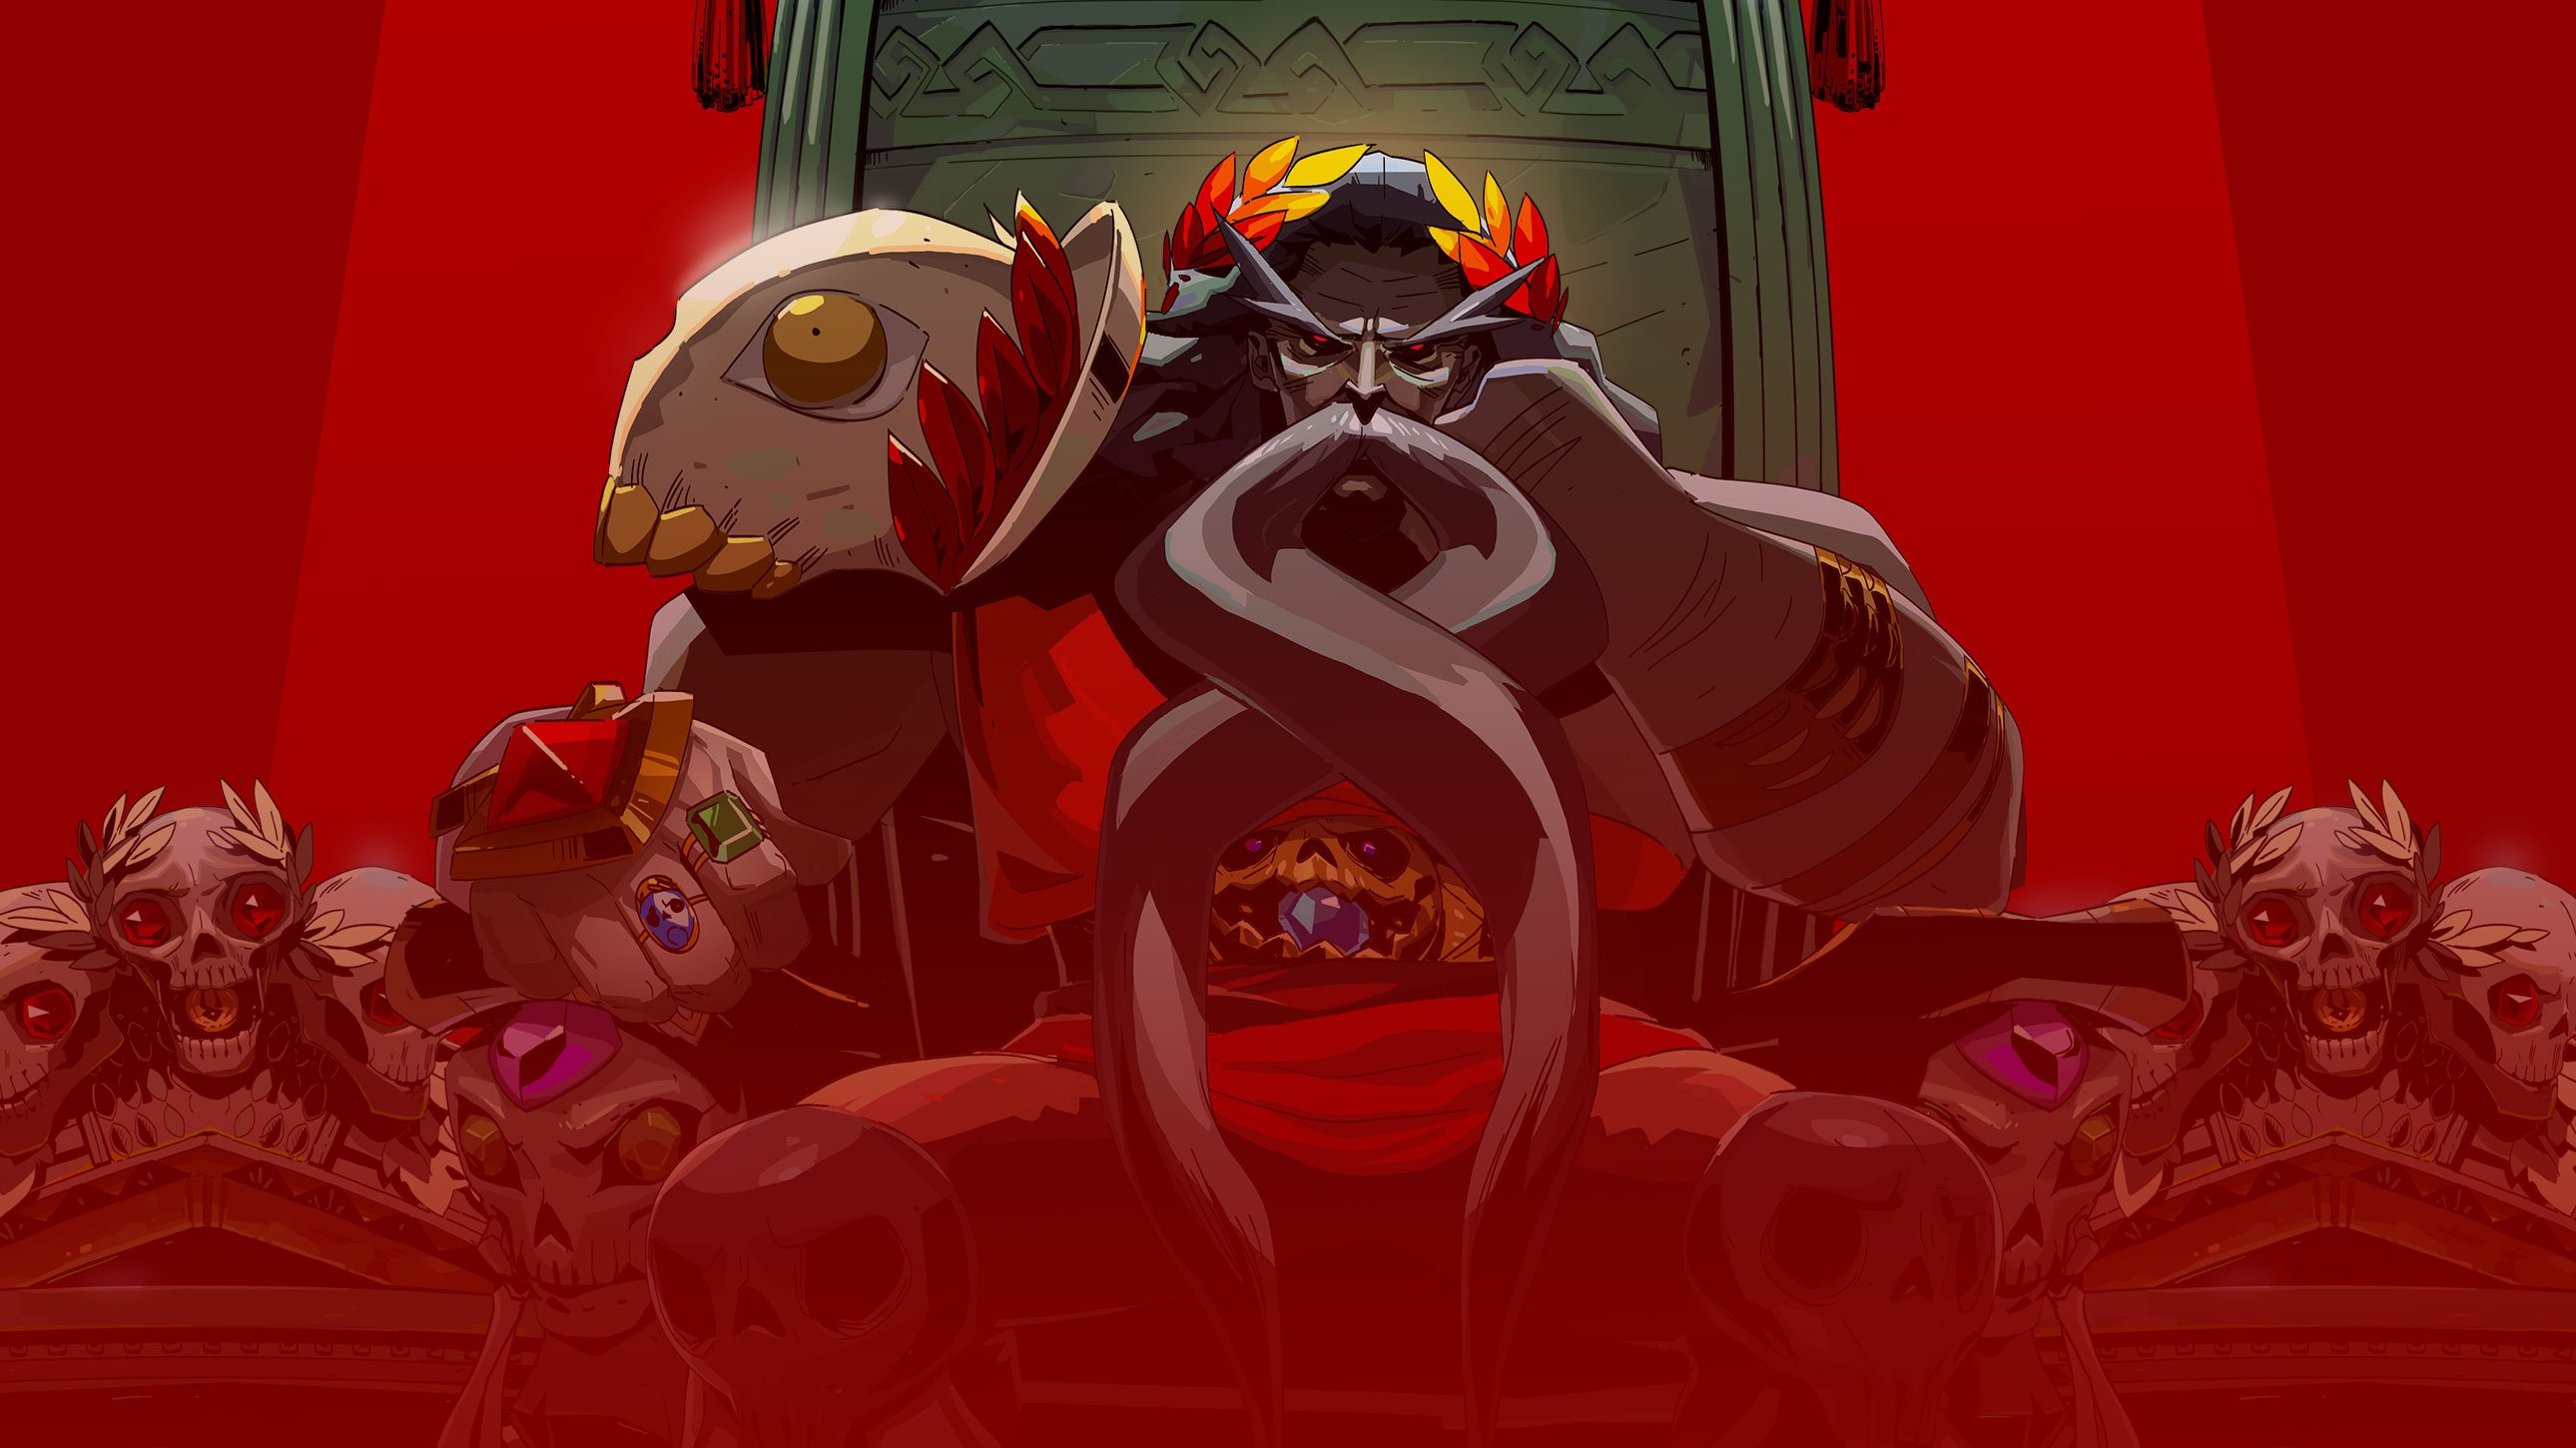 Hades has a deep story ripe with backstory on its protagonist, Zagreus.